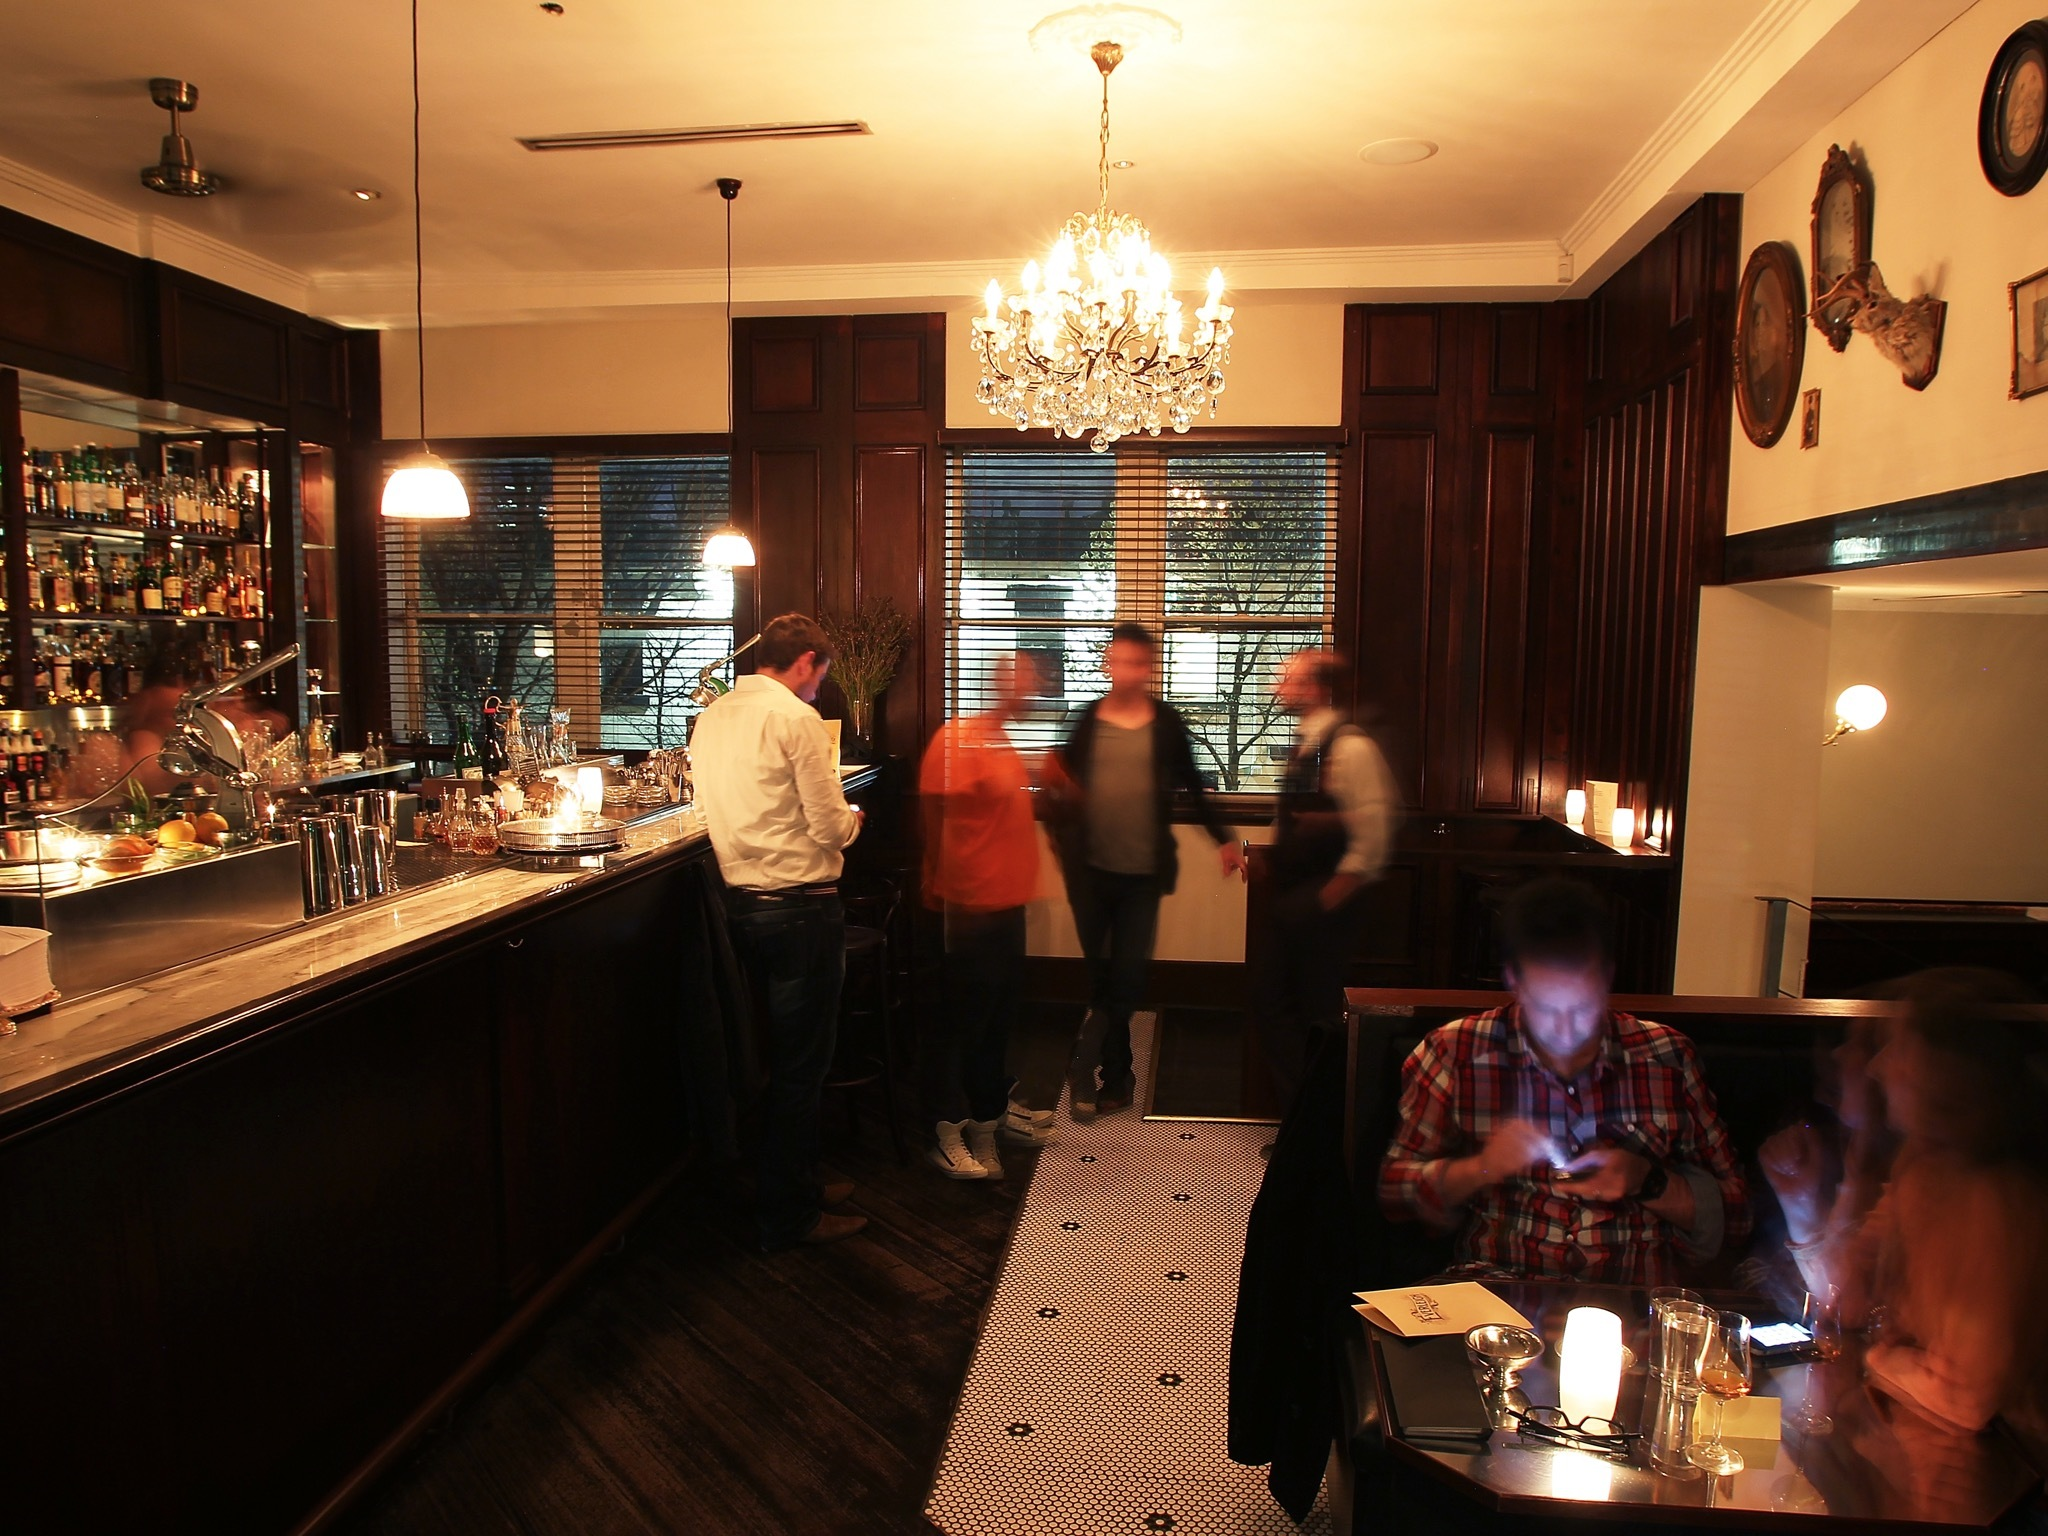 An interior shot at The Everleigh showing people standing and si